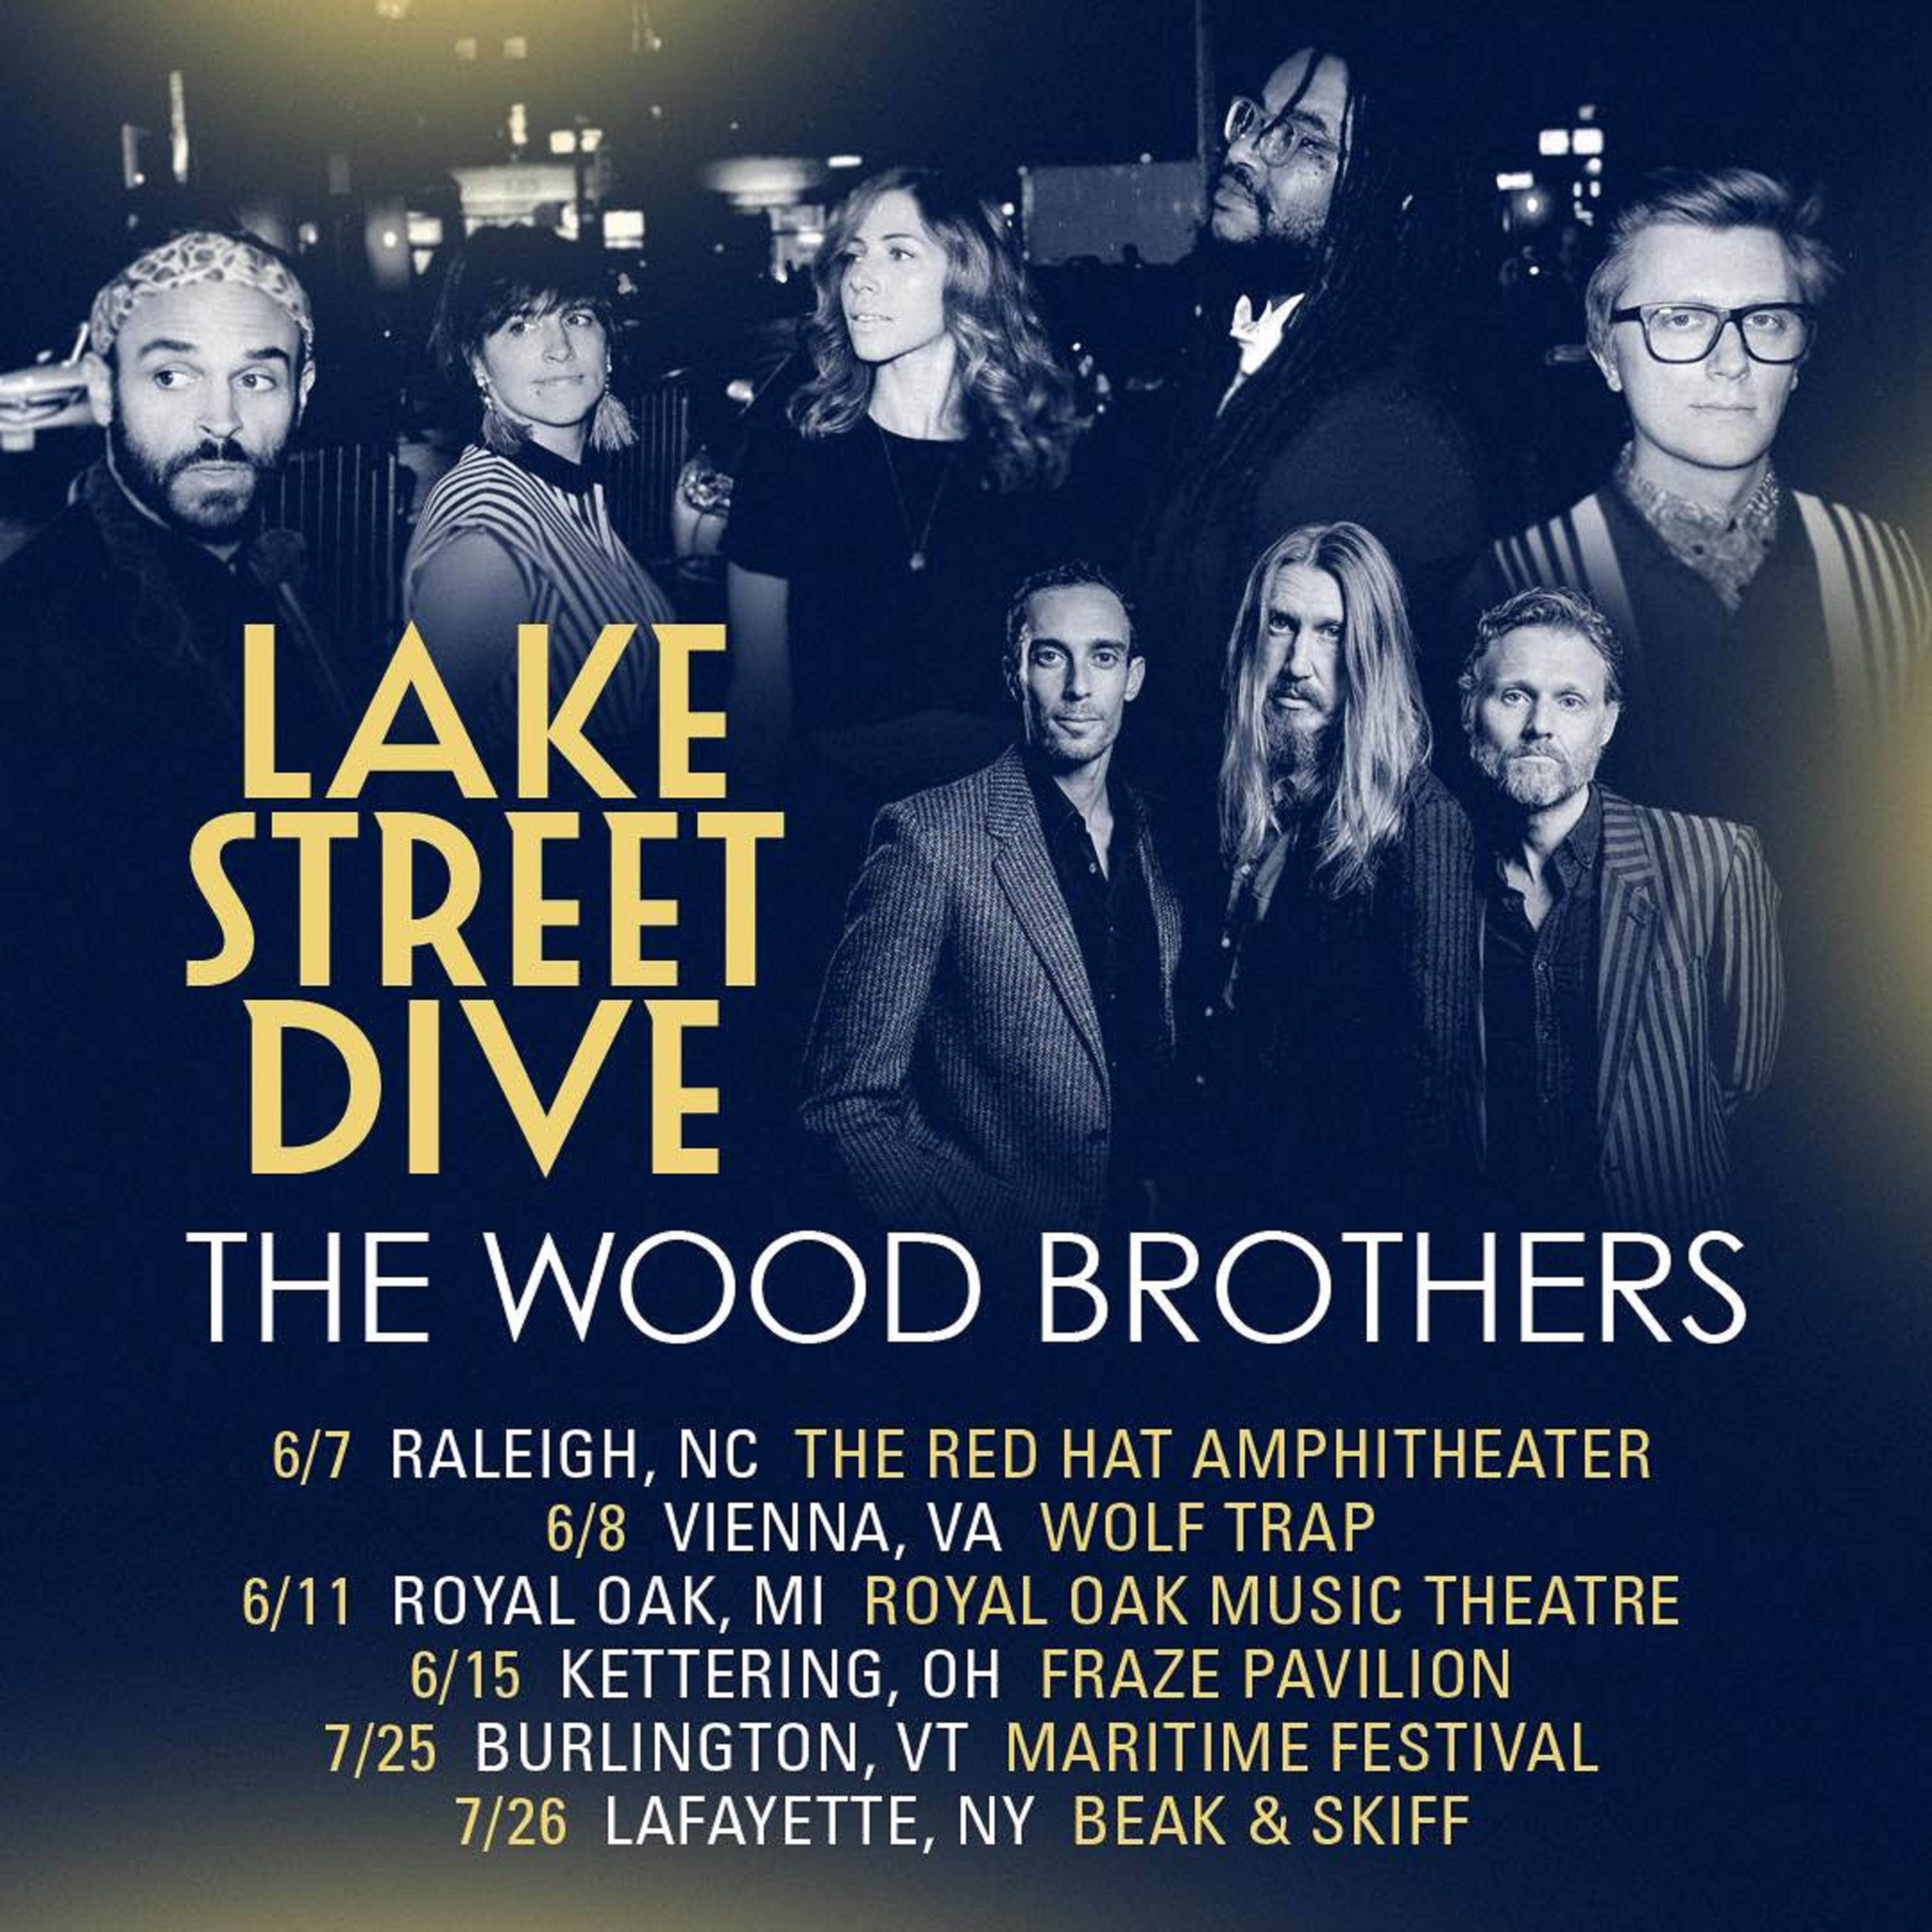 The Wood Brothers + Lake Street Dive Tour Together This Summer